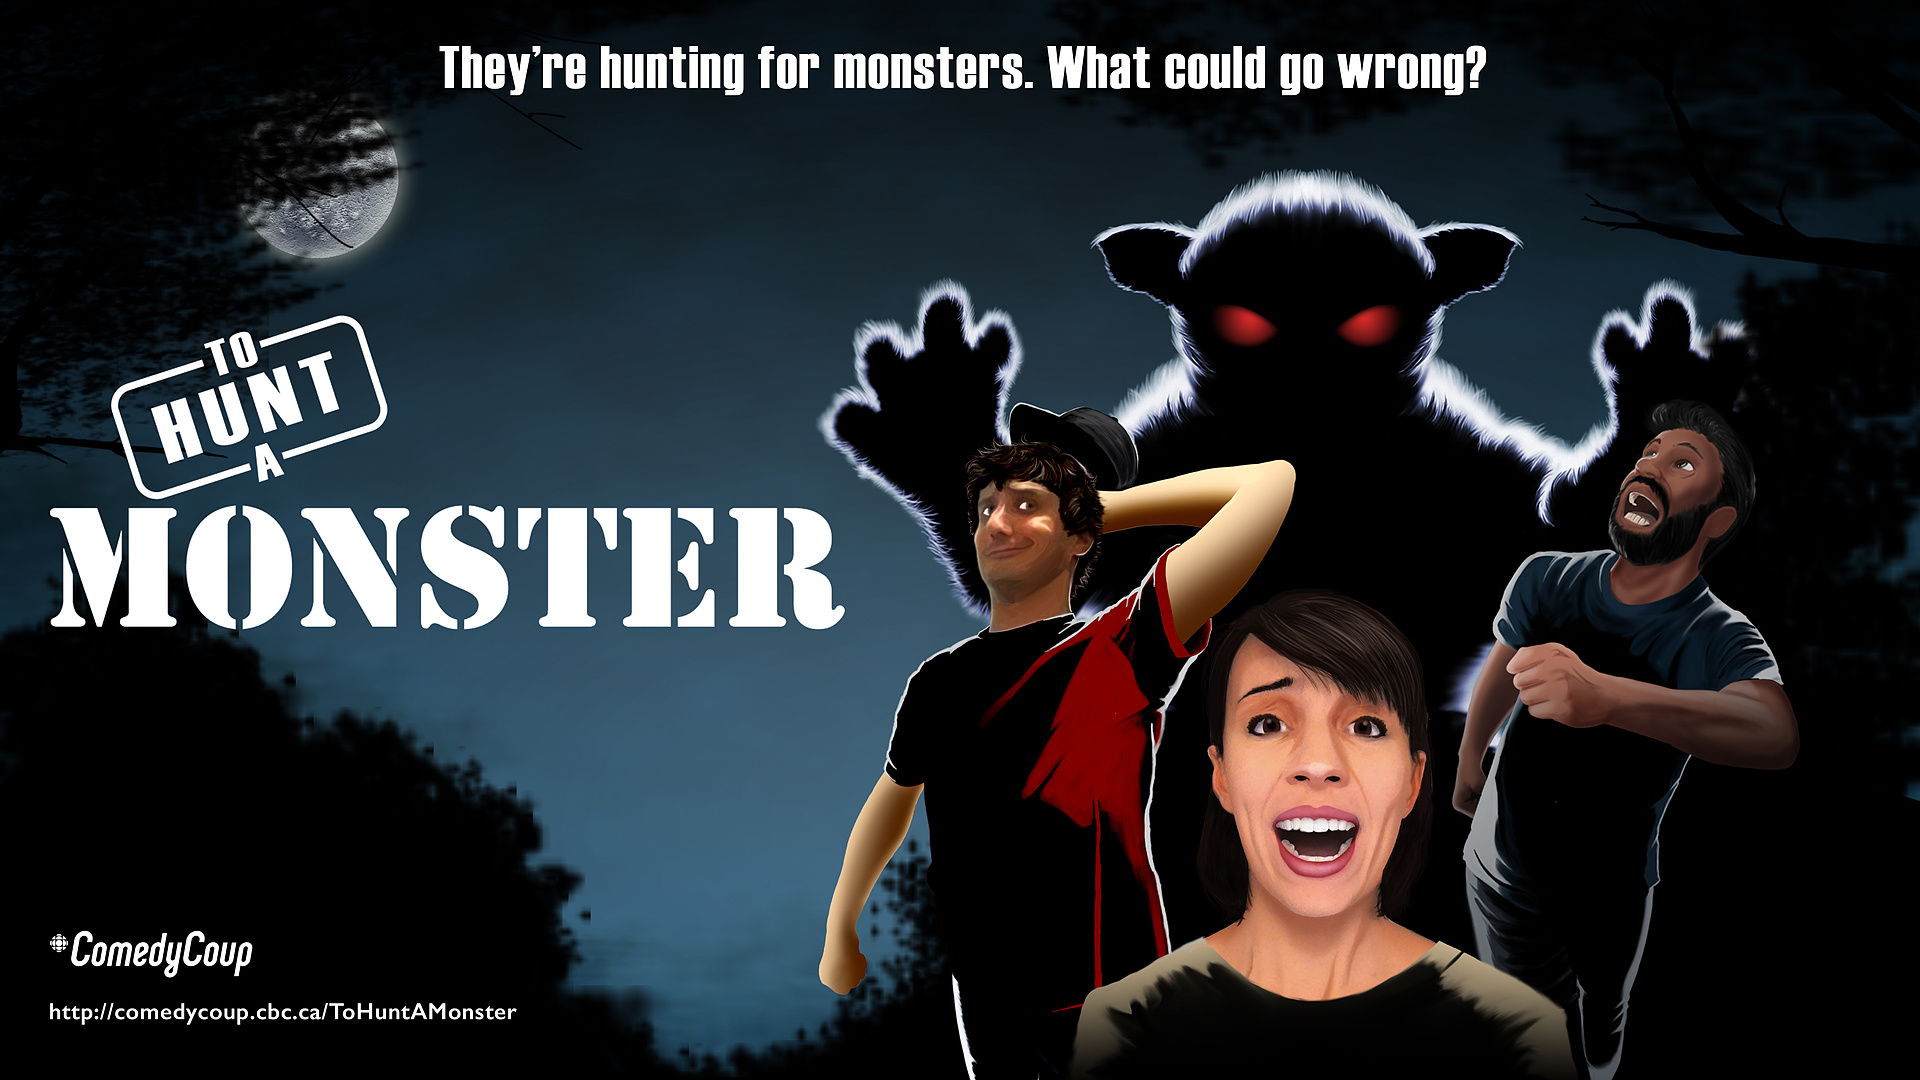 Week 4 Key It: Poster A To Hunt a Monster...